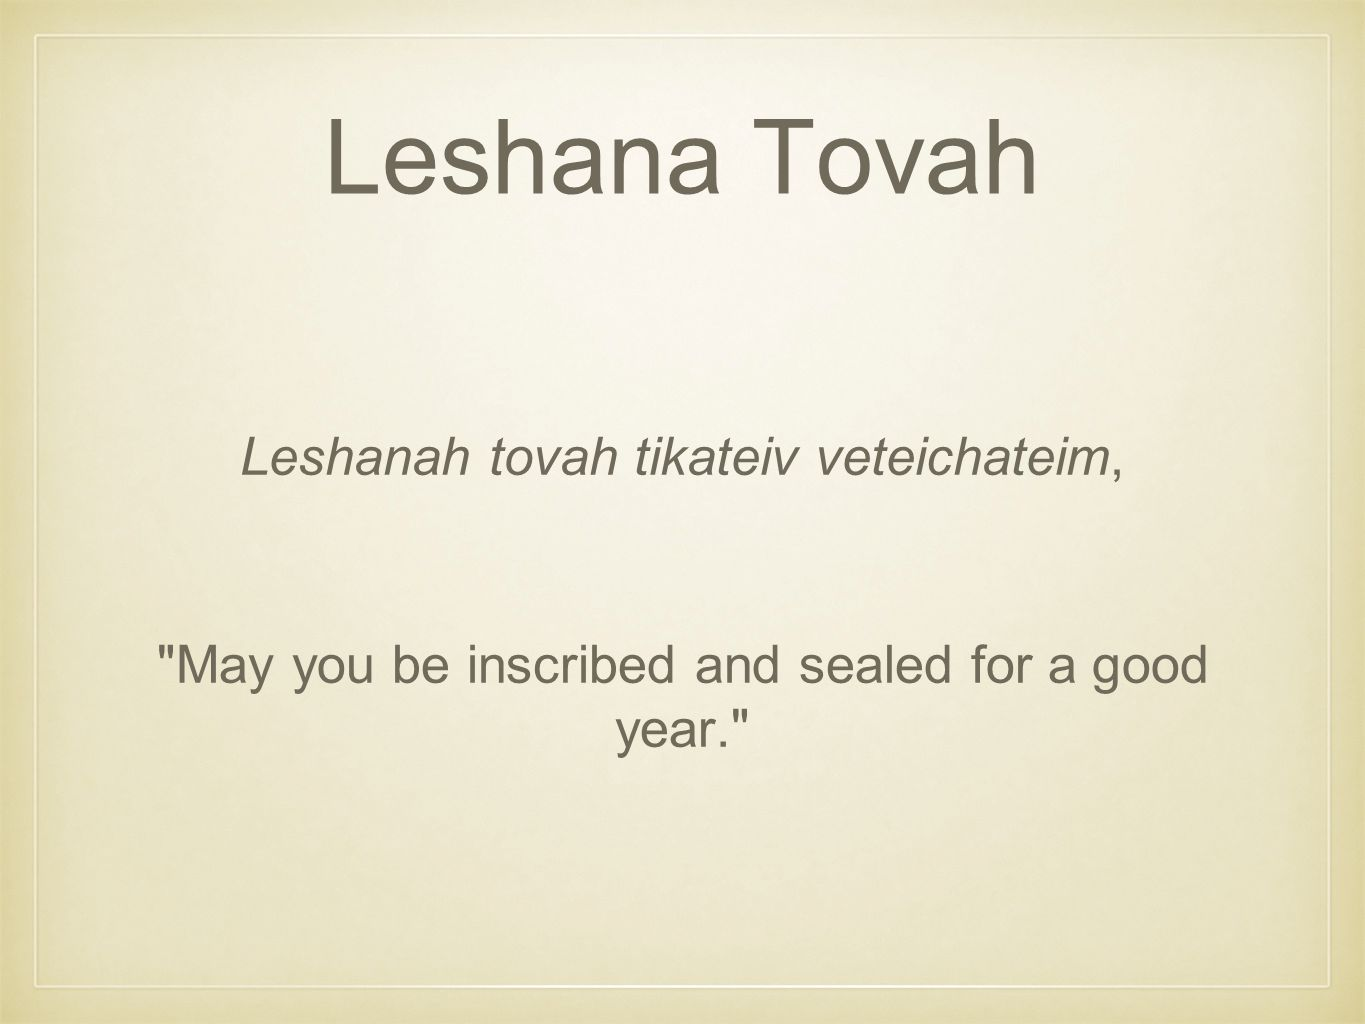 Leshana Tovah Leshanah tovah tikateiv veteichateim, May you be inscribed and sealed for a good year.